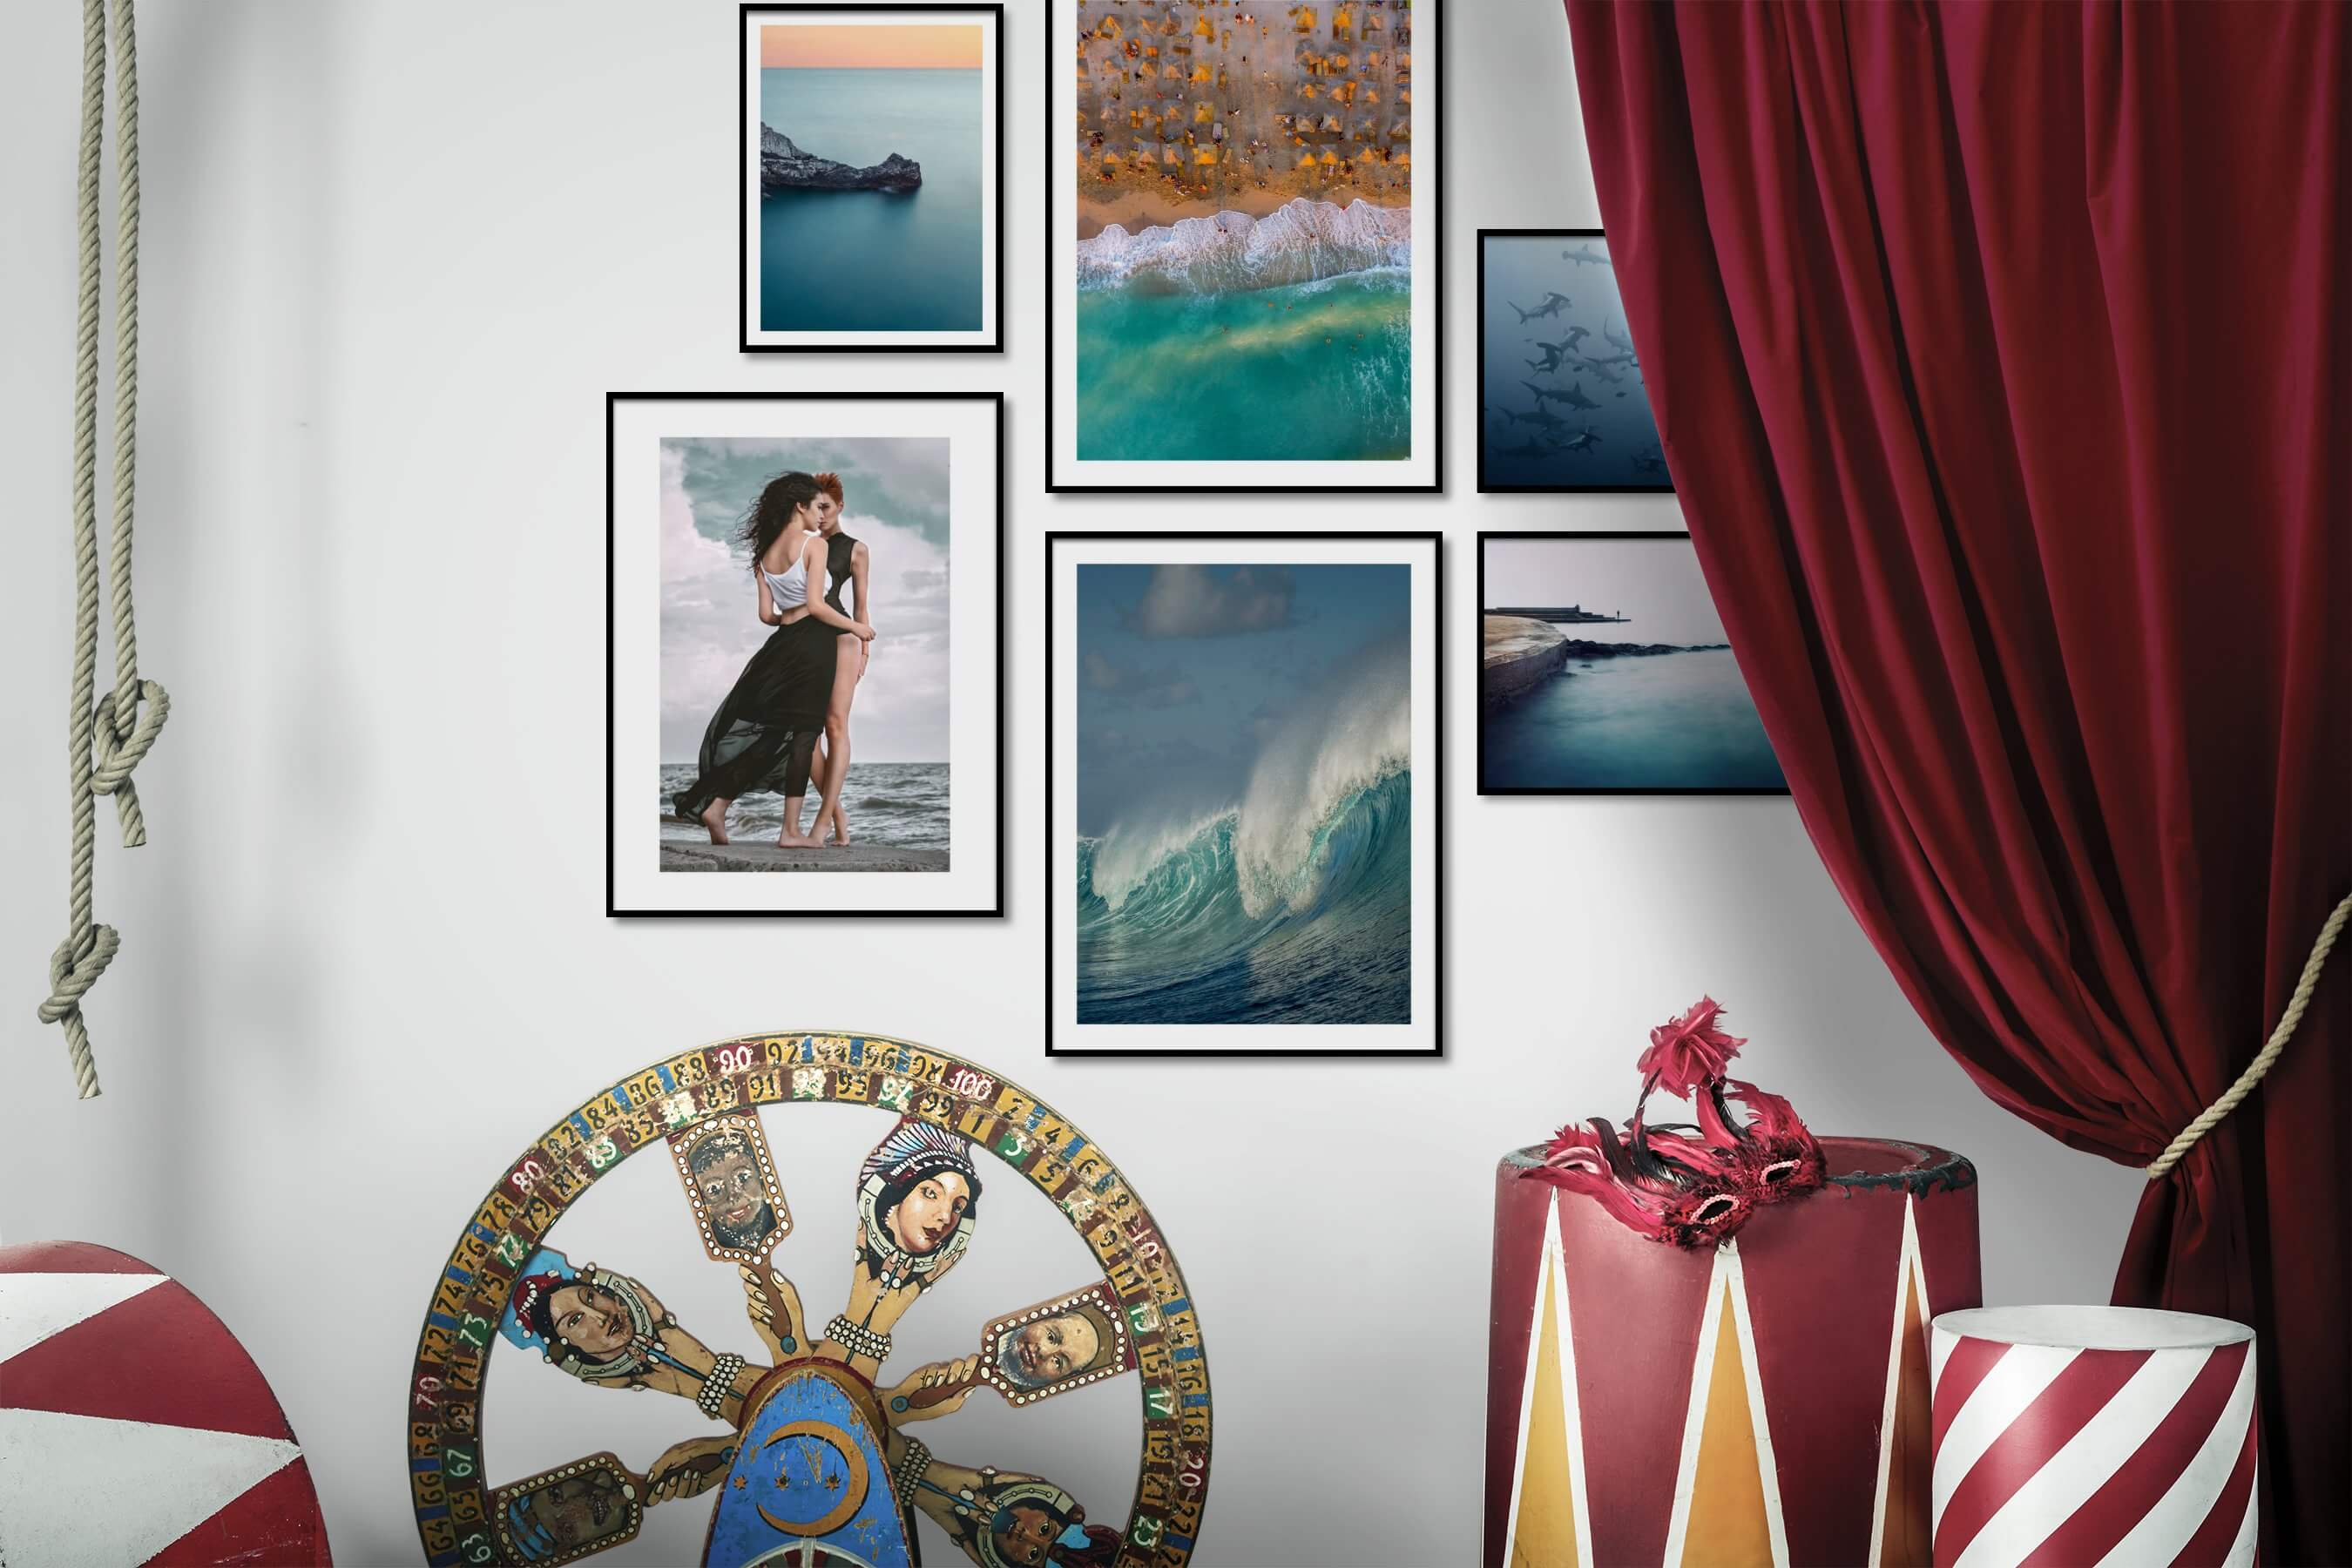 Gallery wall idea with six framed pictures arranged on a wall depicting For the Minimalist, Beach & Water, For the Moderate, Fashion & Beauty, Animals, and Mindfulness